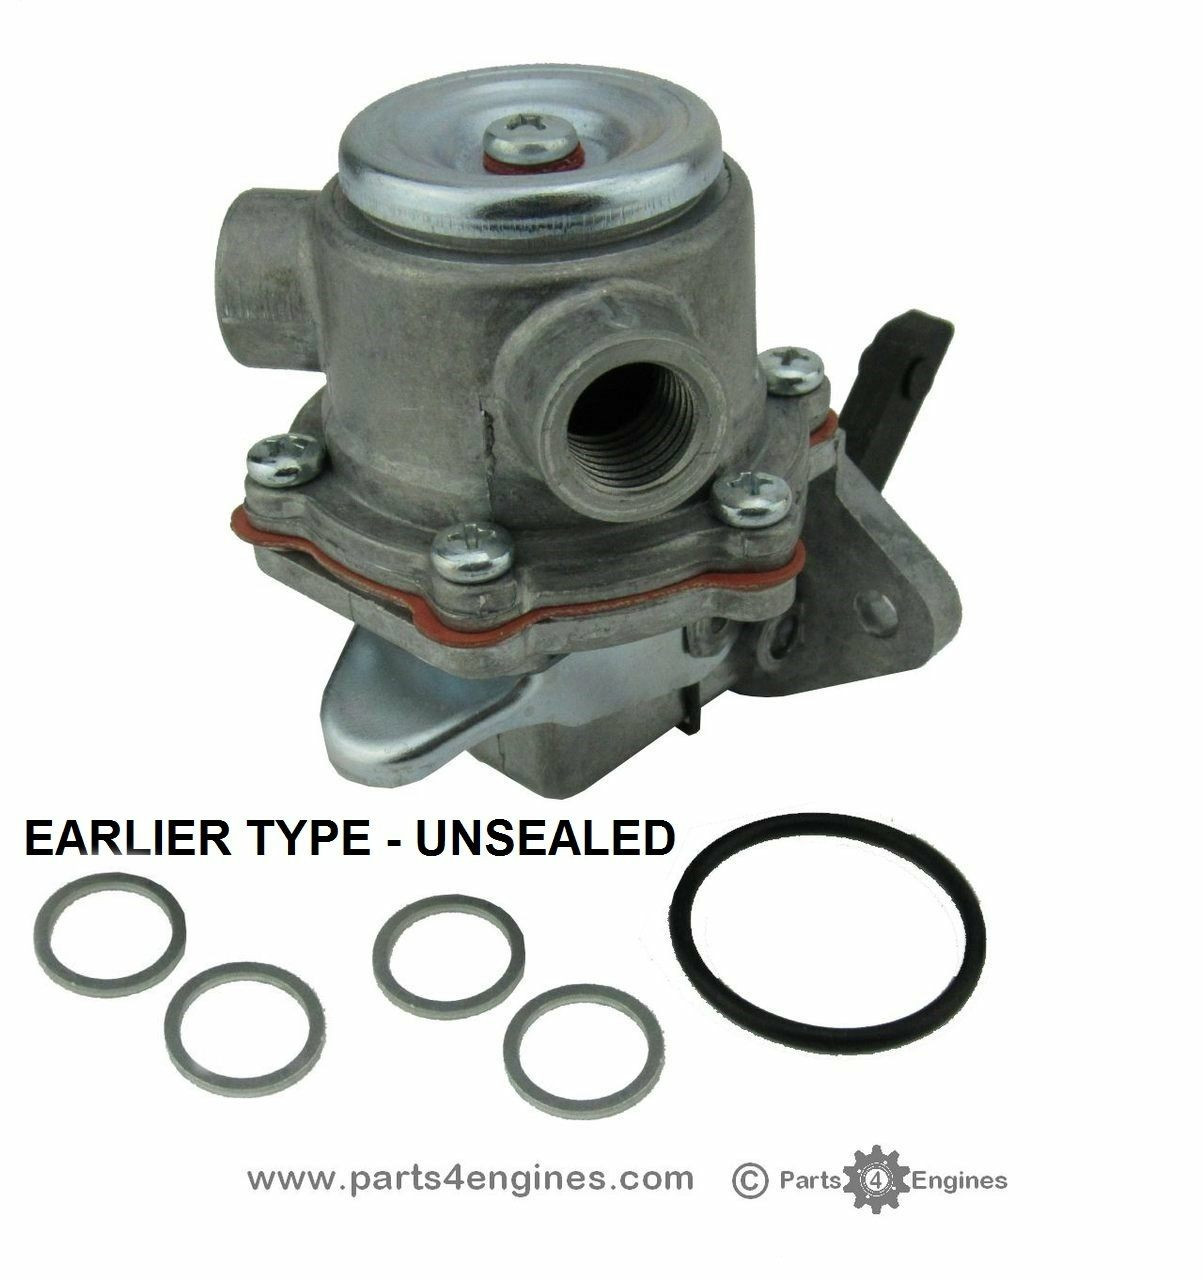 Volvo Penta 2001 fuel lift pump earlier from Parts4engines.com